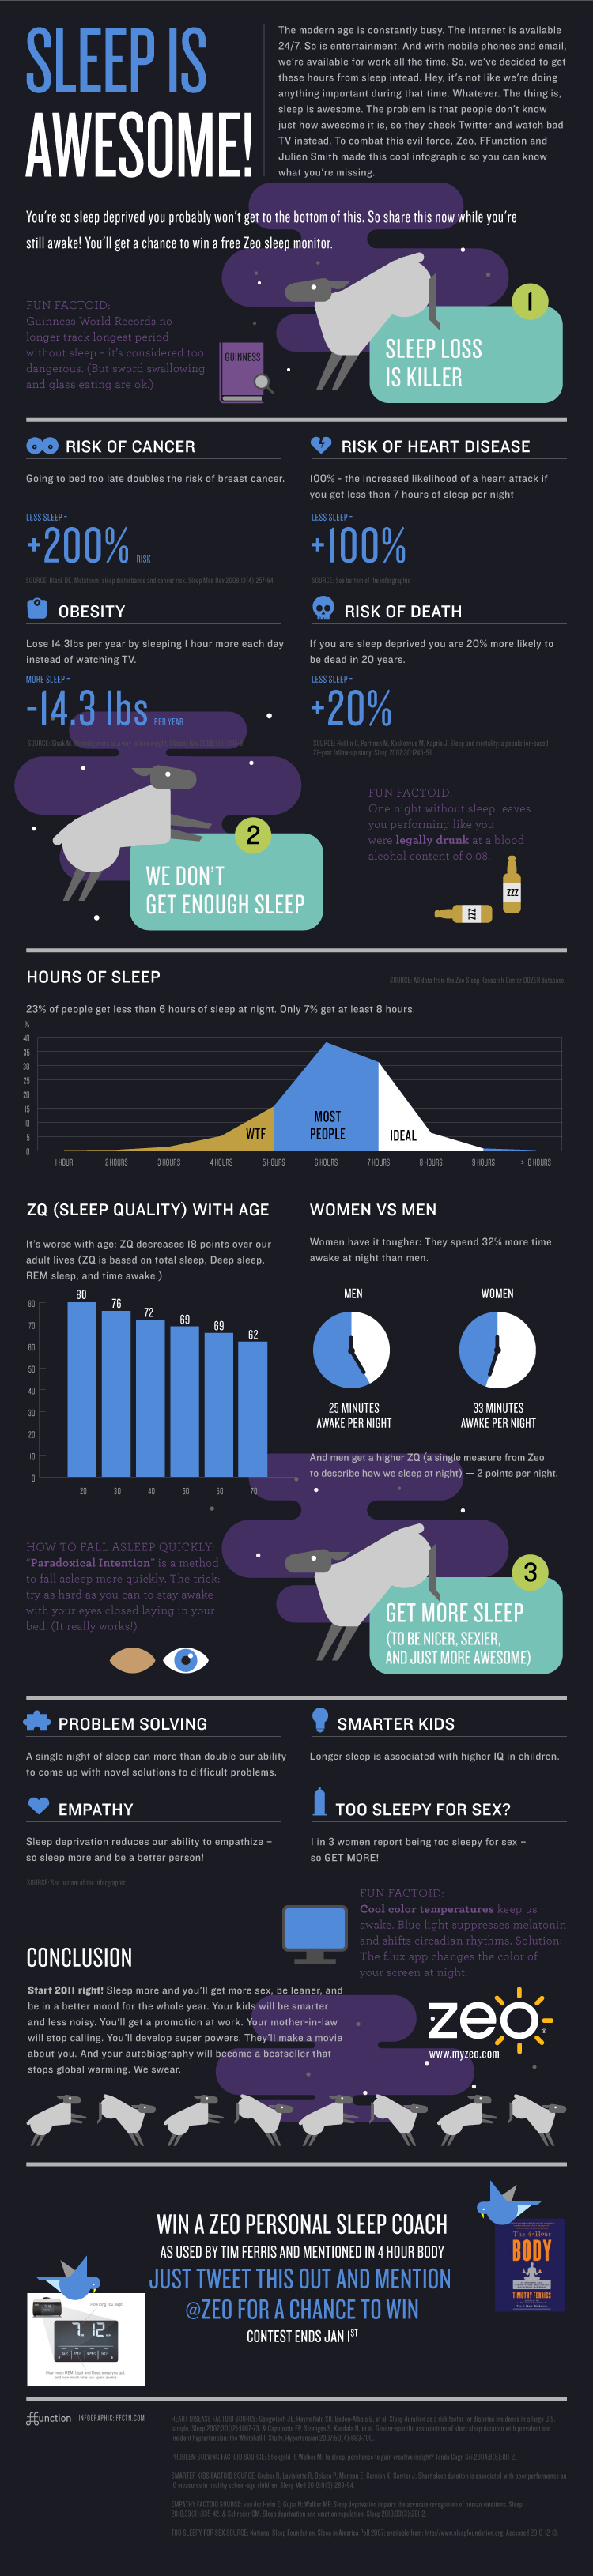 Infographic via www.fastcodesign.com